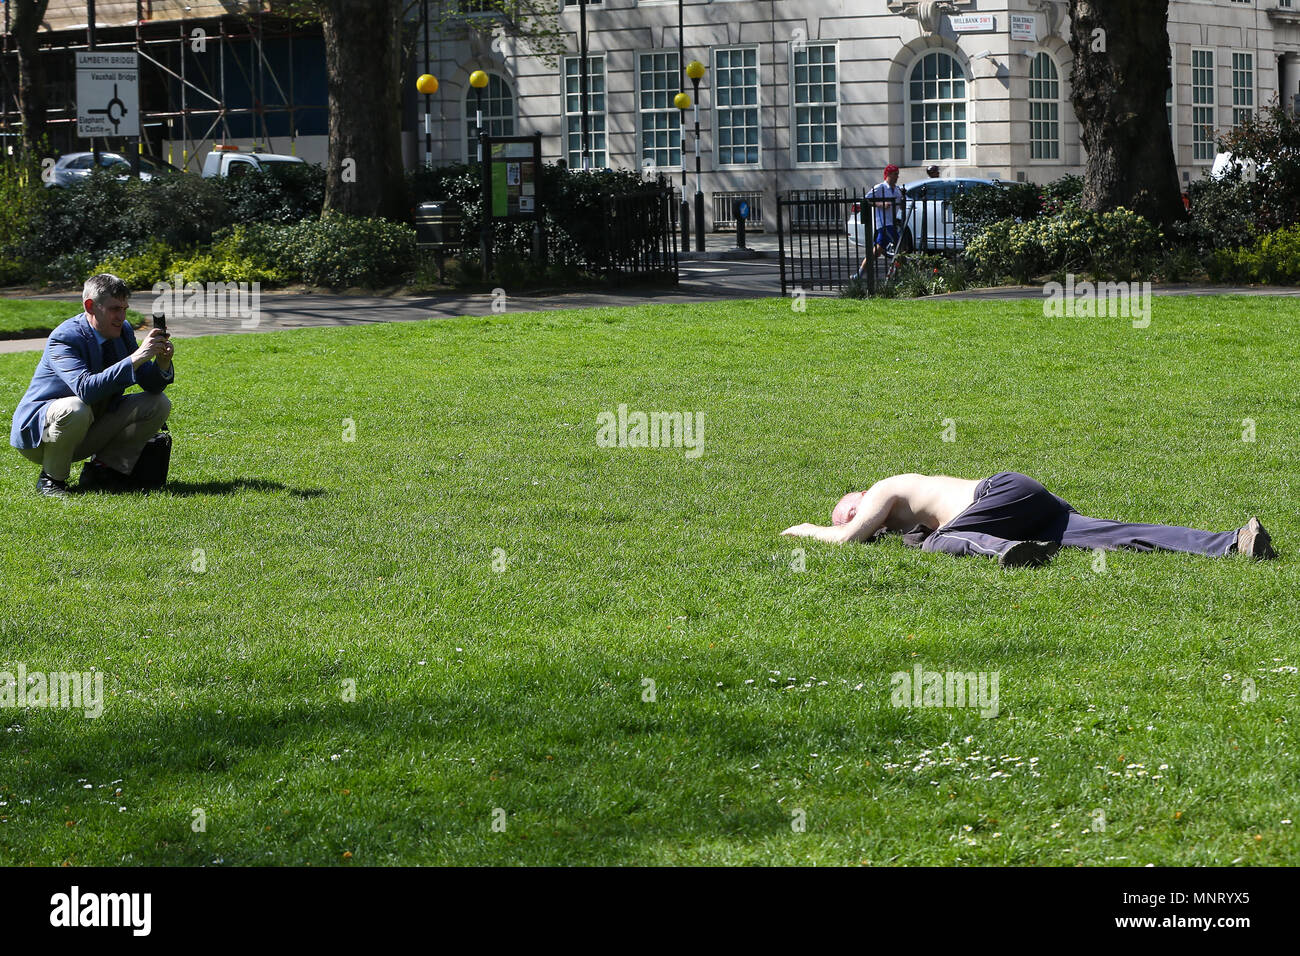 People Enjoy The Warm Weather In London Heatwave In London And South East As Temperatures Are